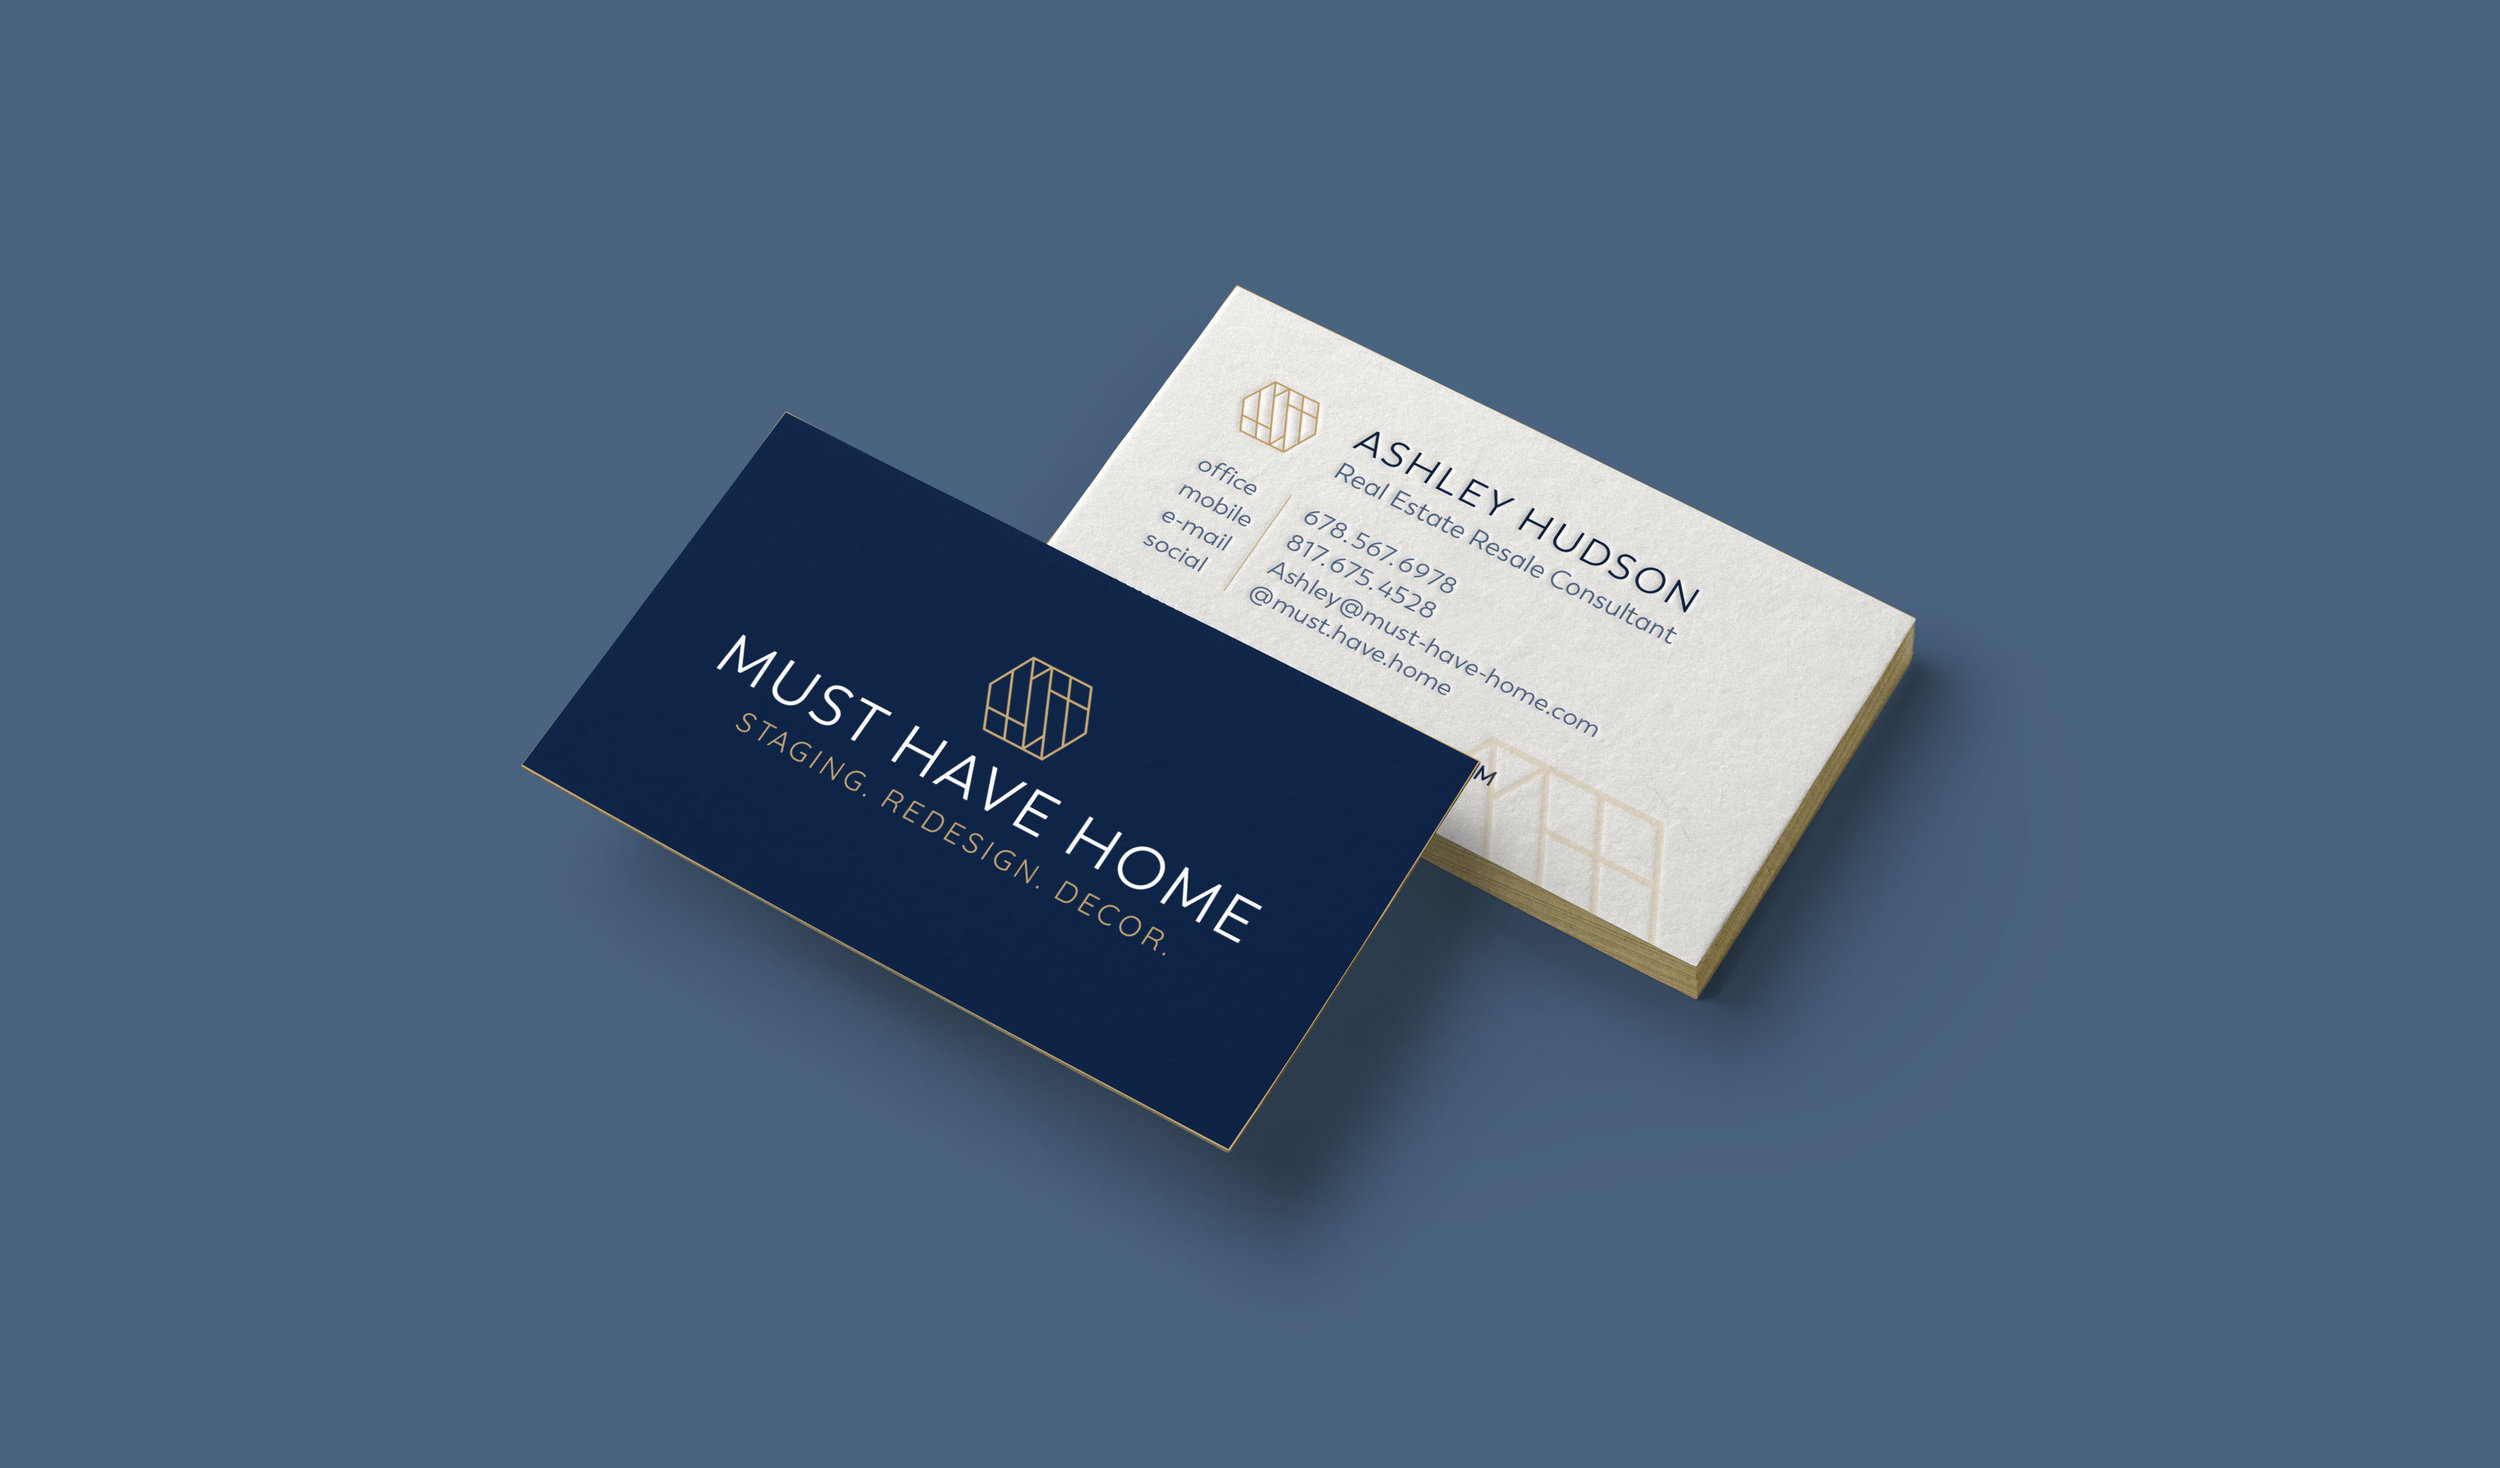 Must Have Home — Kristen Digmon